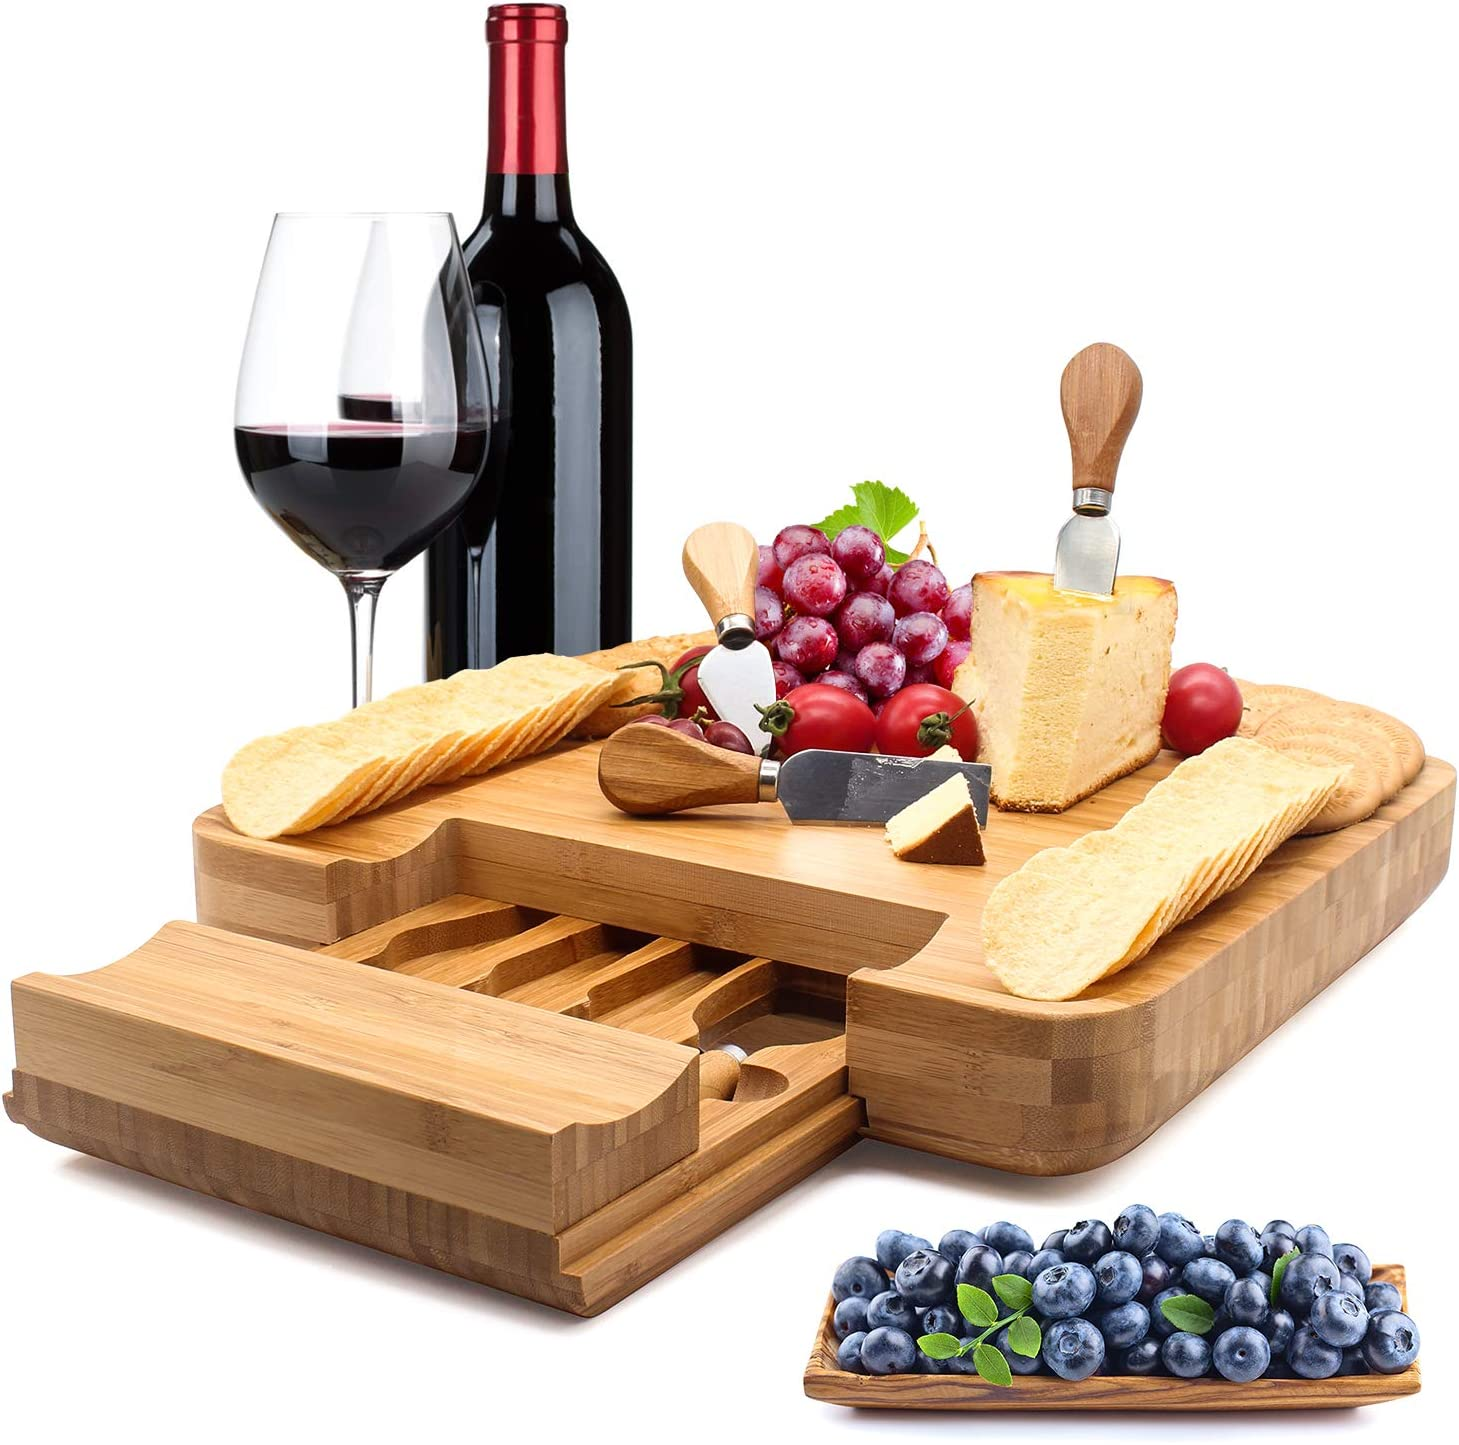 Esup Bamboo Cheese Board Set Cheese Plate With Integrated Slide-Out Drawer and 4 Specialist Cheese Knives Set, 13'' x 13'' Perfect Christmas Gifts Thanksgiving Gifts